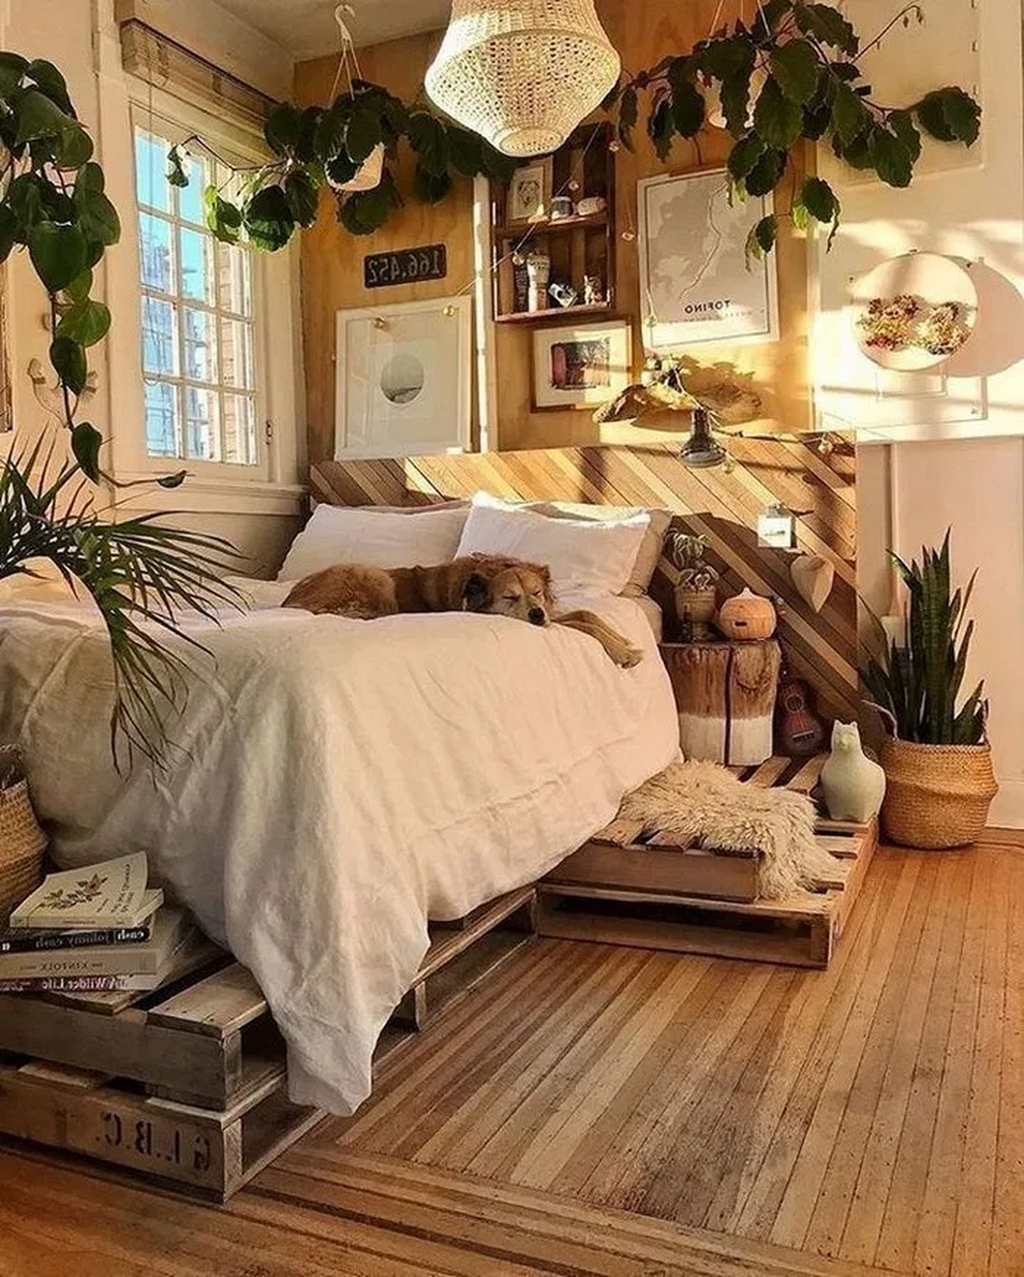 38 Gorgeous Bohemian Bedroom Decor Ideas #bohemianbedrooms